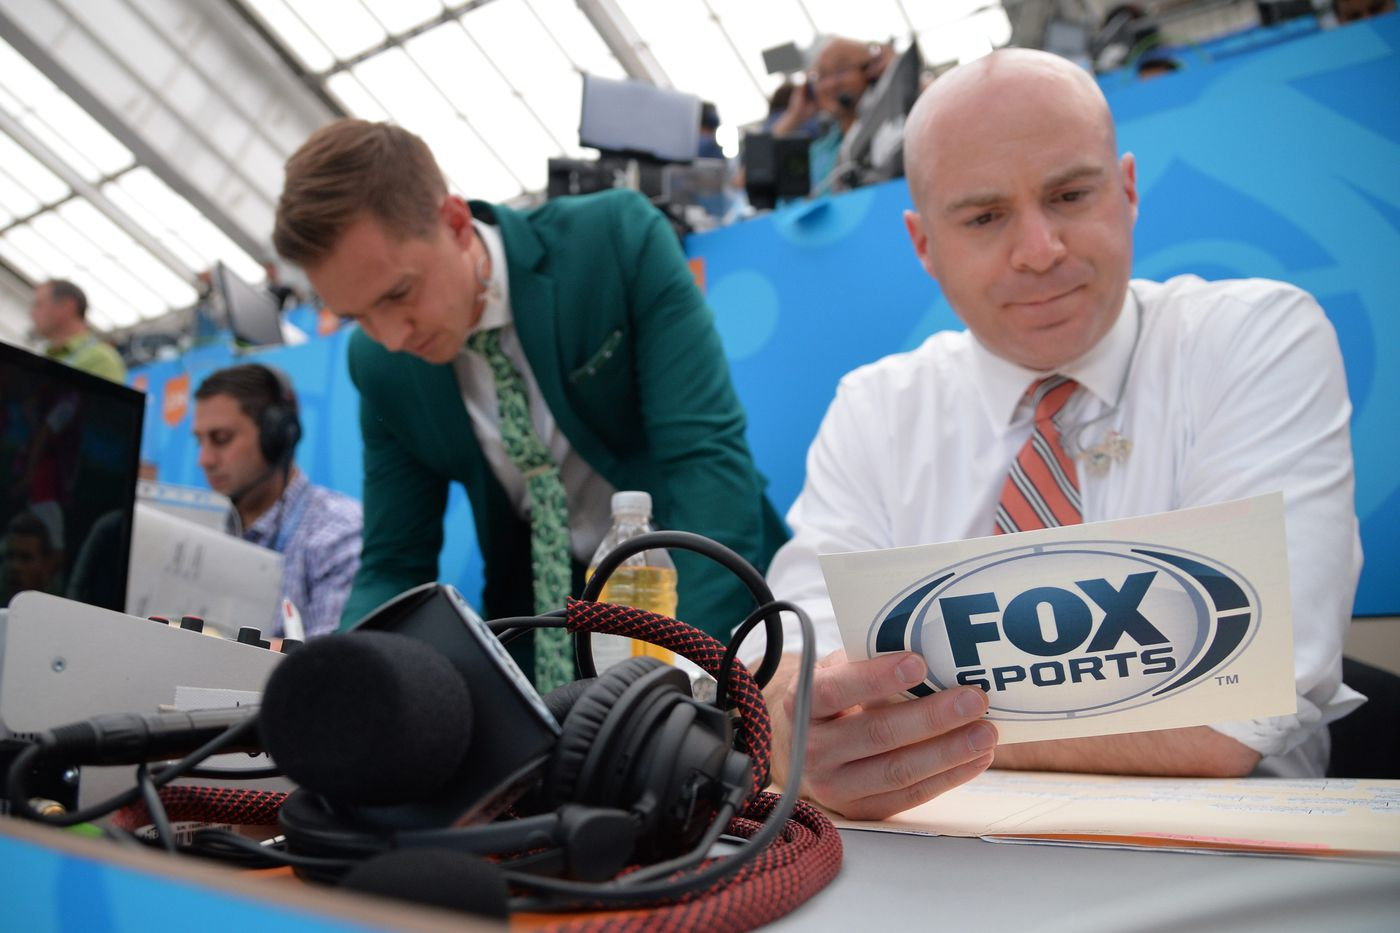 Once an American 'soccer nerd by myself,' John Strong now is calling the World Cup final for Fox